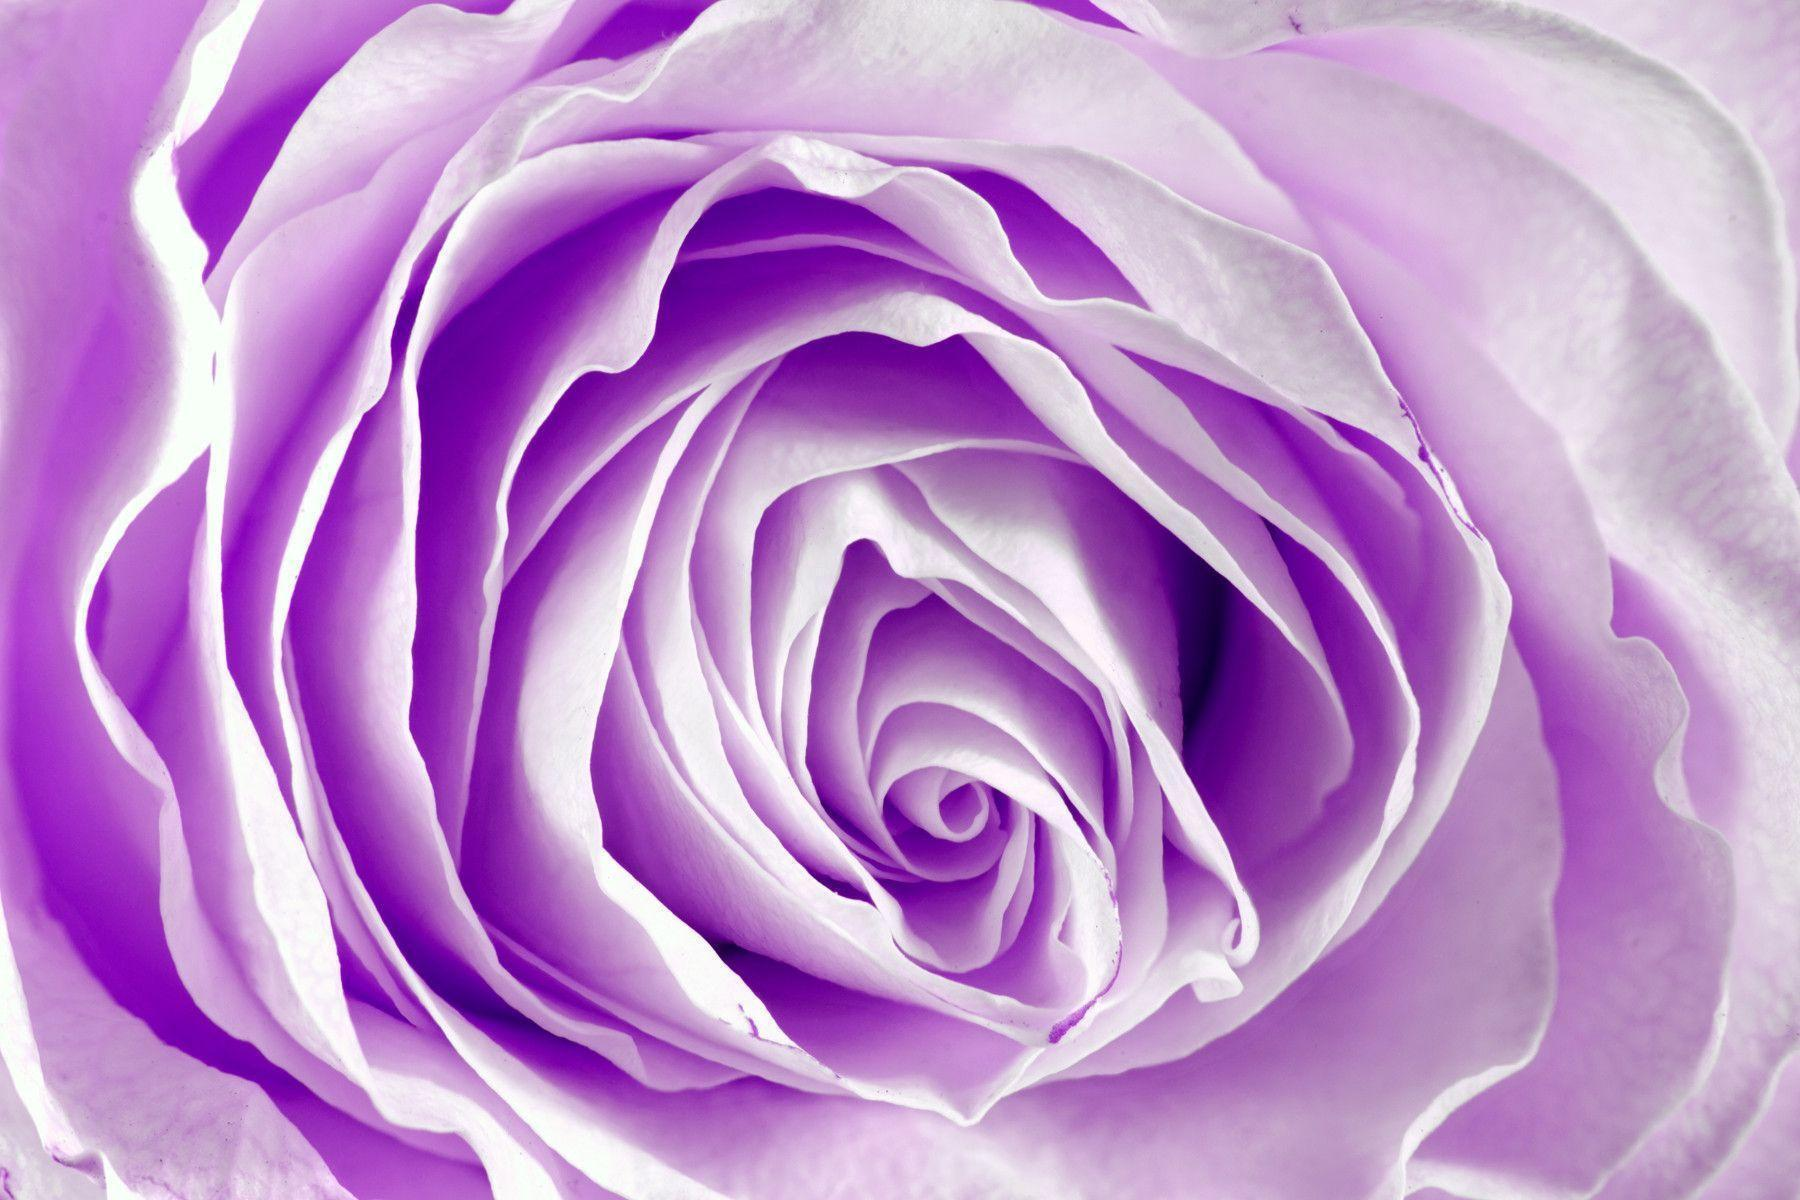 wallpapers of purple roses - photo #20